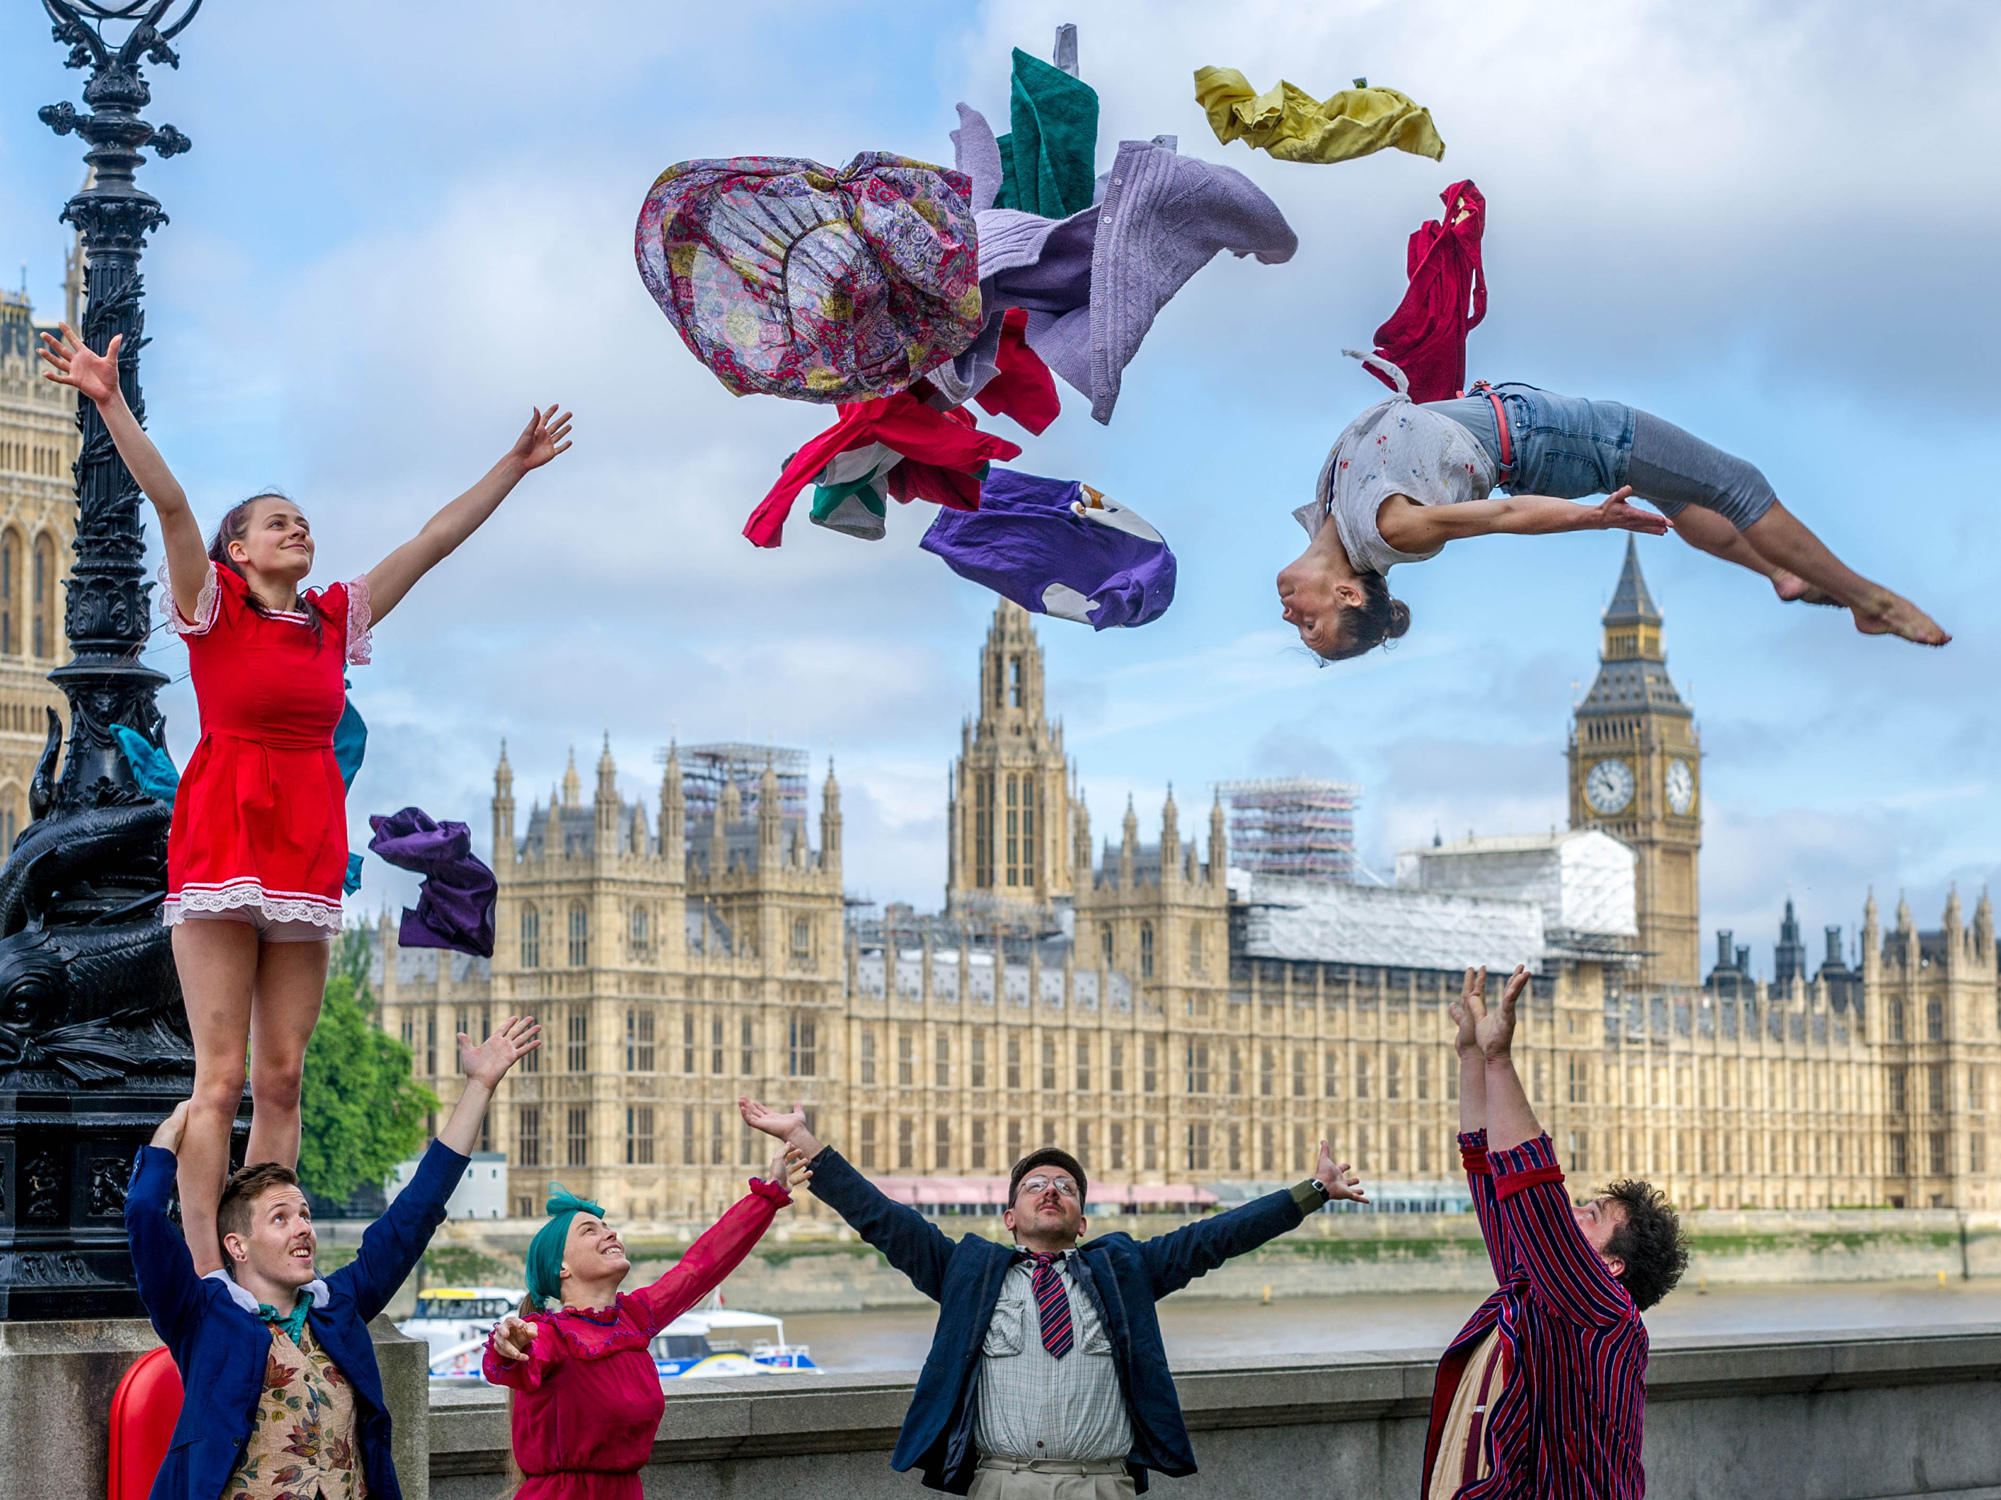 Acrobats from the group Lost in Translation perform a stunt in front of the Houses of Parliament in London